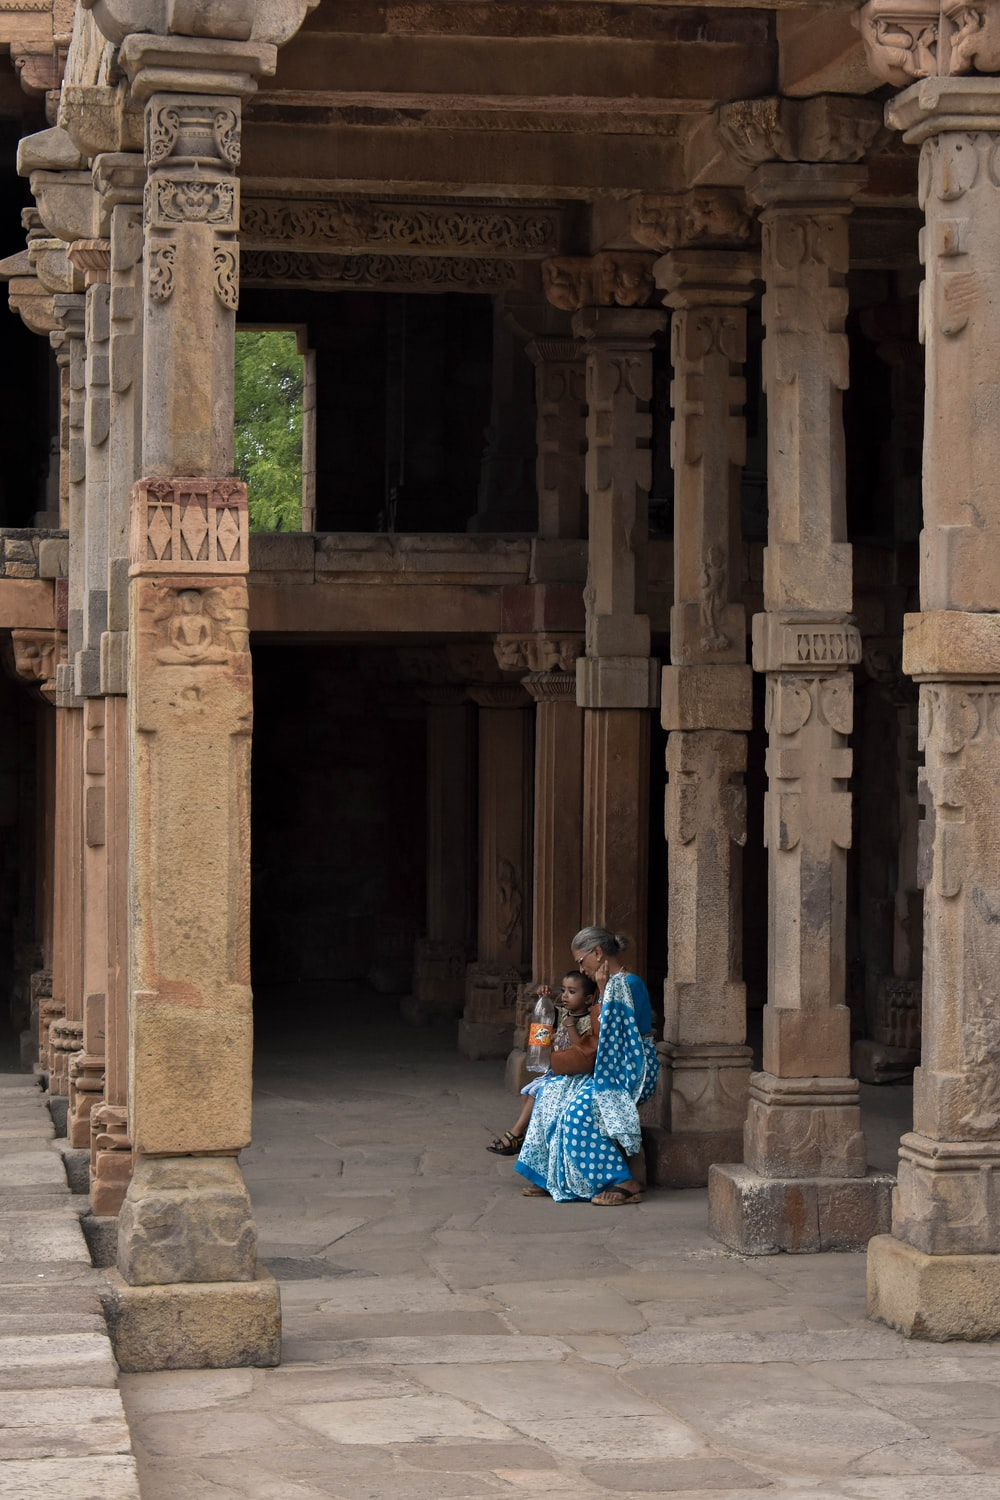 woman and child sitting inside building